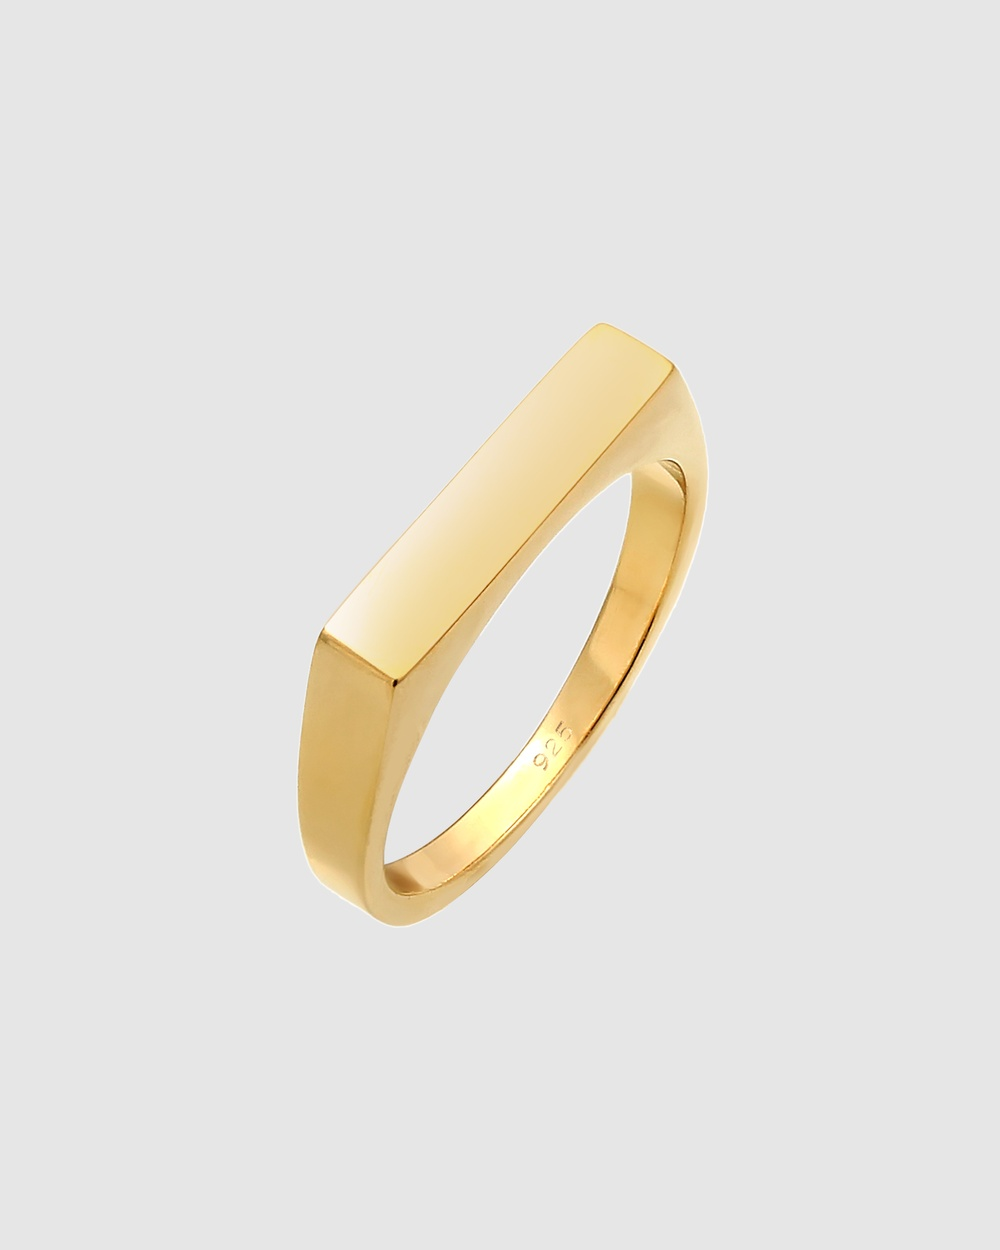 Elli Jewelry Ring Pinky Signet Geo Basic in 925 Sterling Silver Gold Plated Jewellery Gold